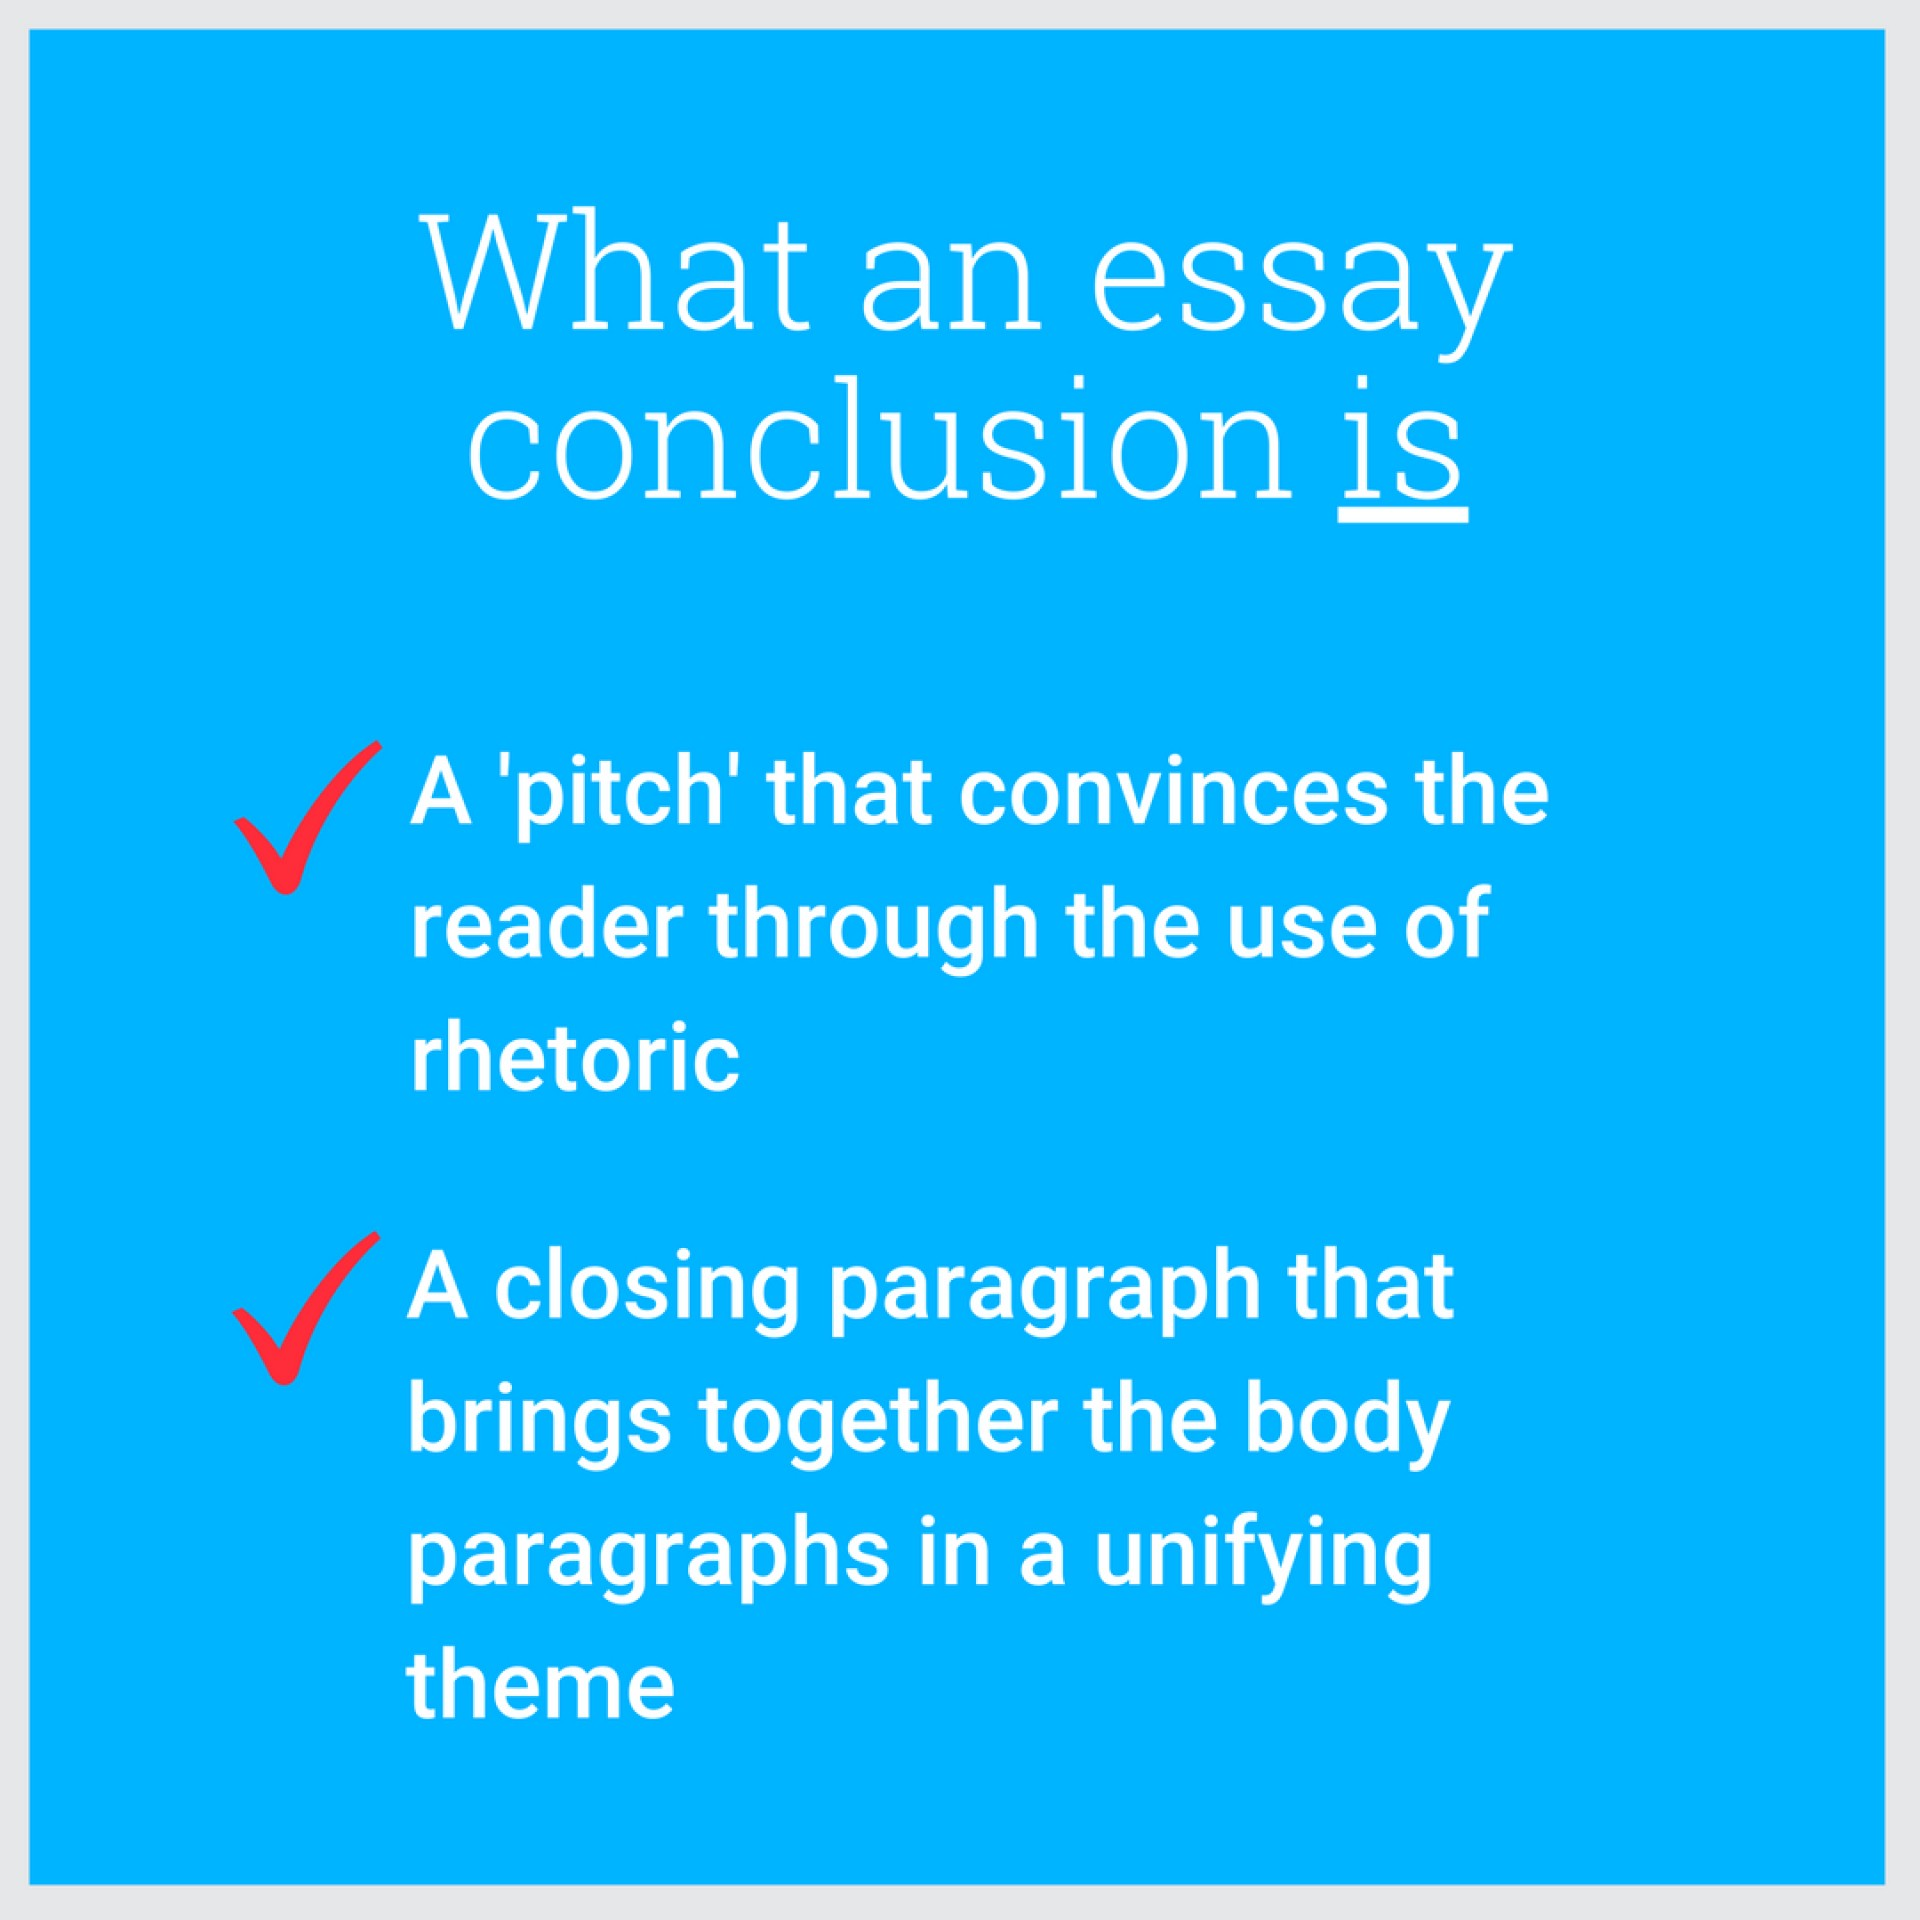 009 How To Write Captivating Conclusion Your Essay Oxbridge Essays Conclude Narrative Example What An Academic Research Paper Argumentative Writing Sample Examples Surprising Of About Racism Outline Yourself 1920